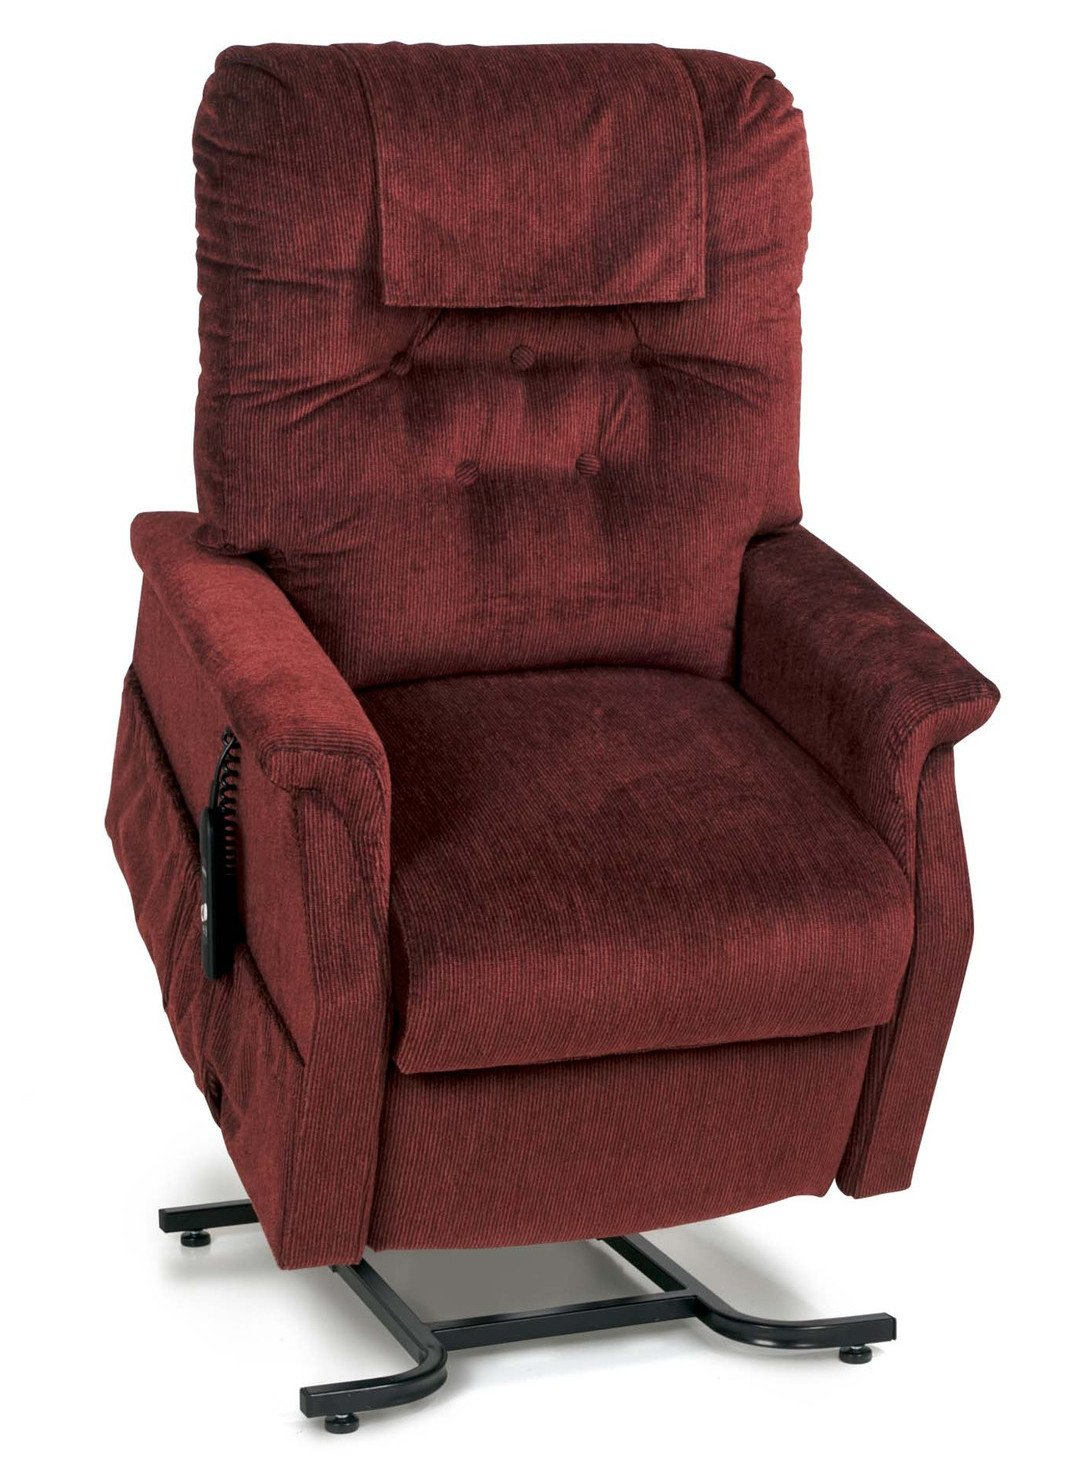 Lift Chair Rental Lift Chair Rental Available In Dfw Metroplex Free